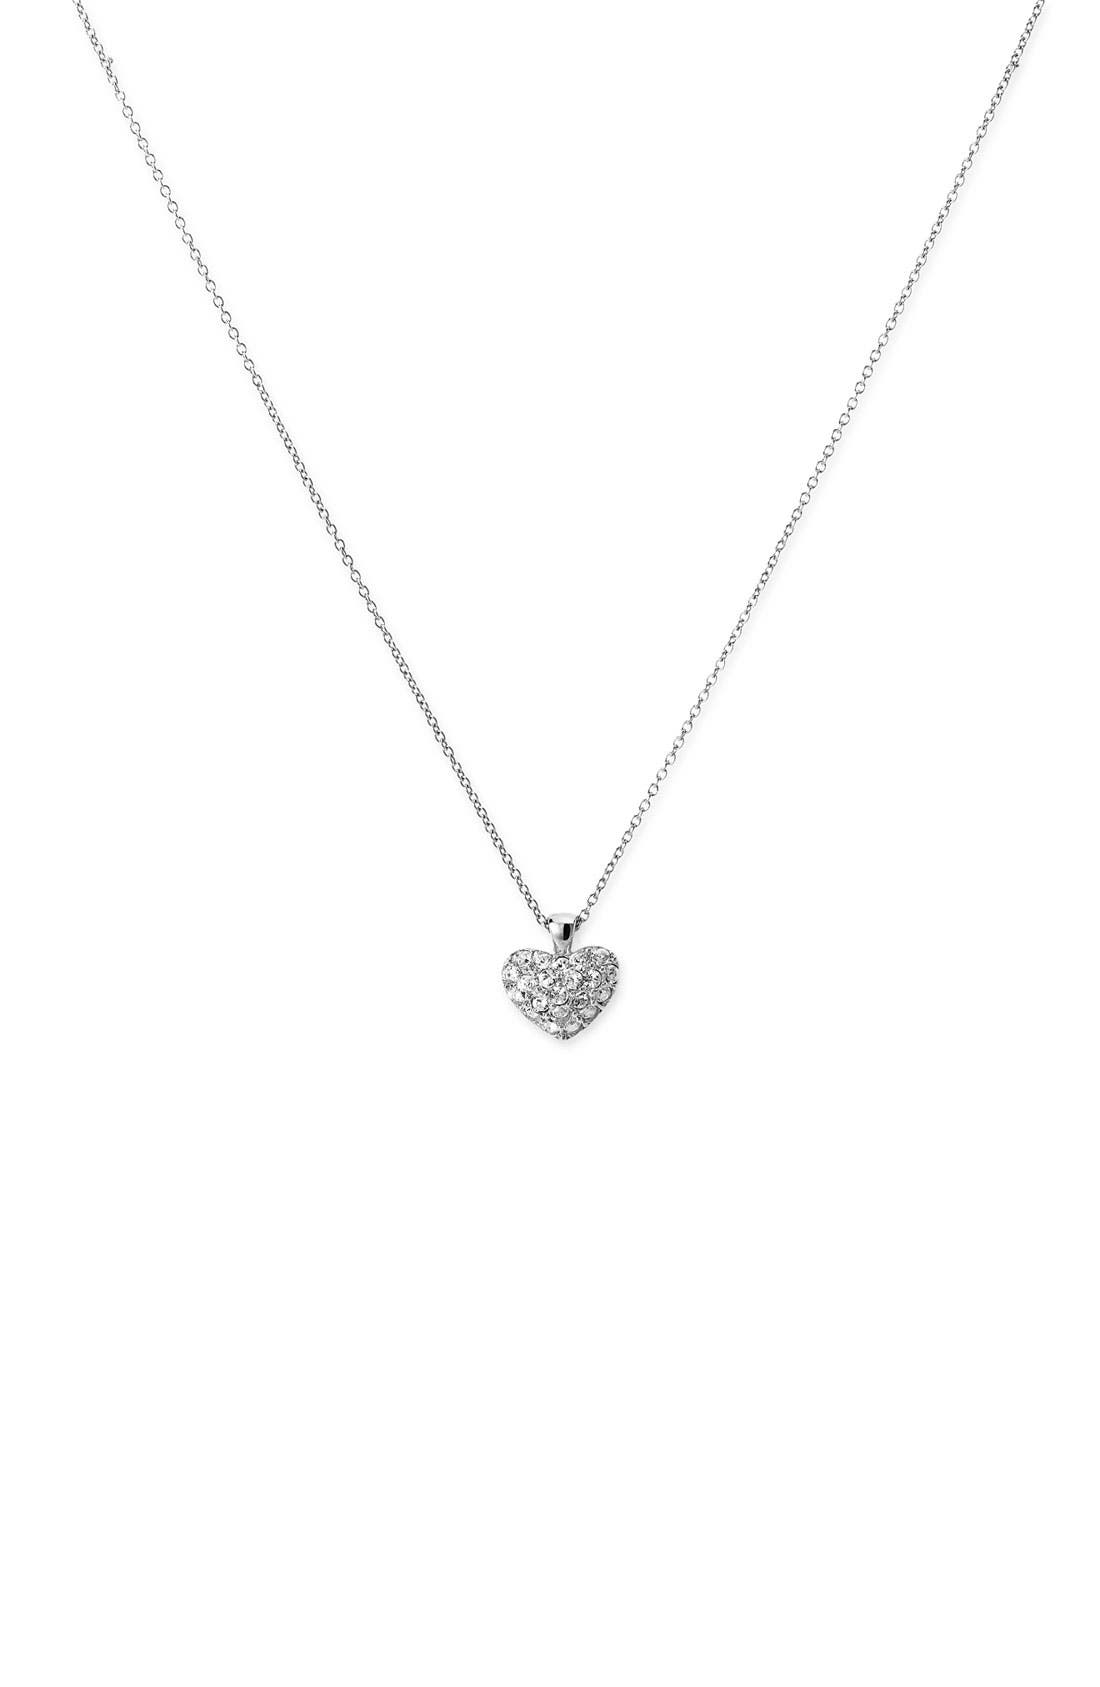 NORDSTROM, Crystal Collection Heart Pendant Necklace, Main thumbnail 1, color, 040